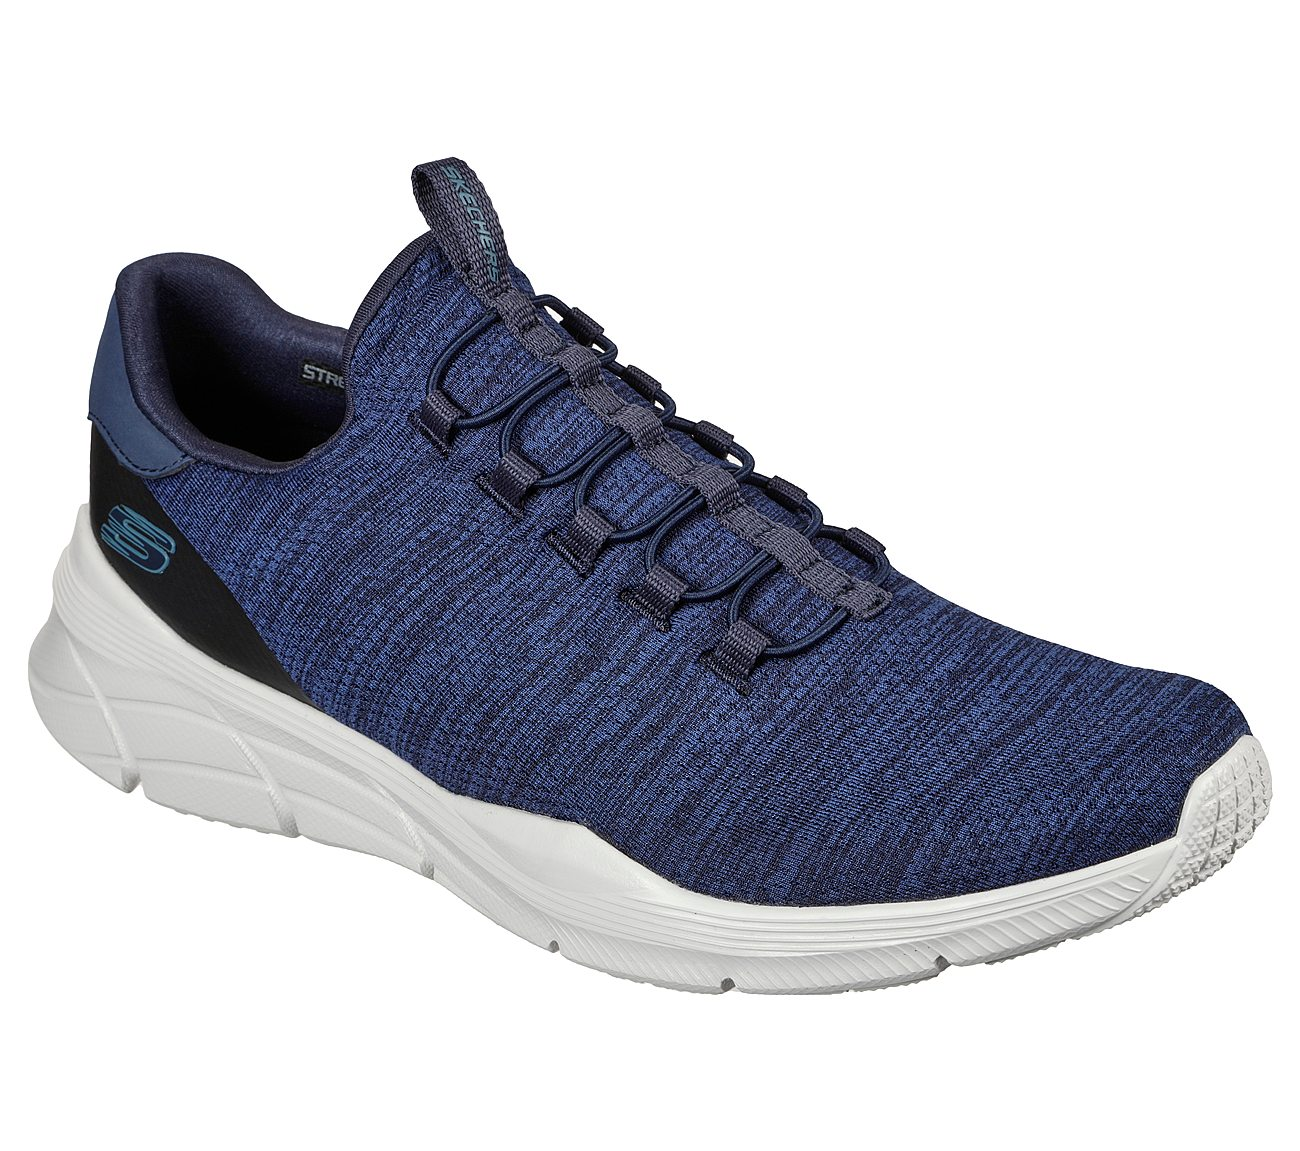 skechers relaxed fit tennis shoes